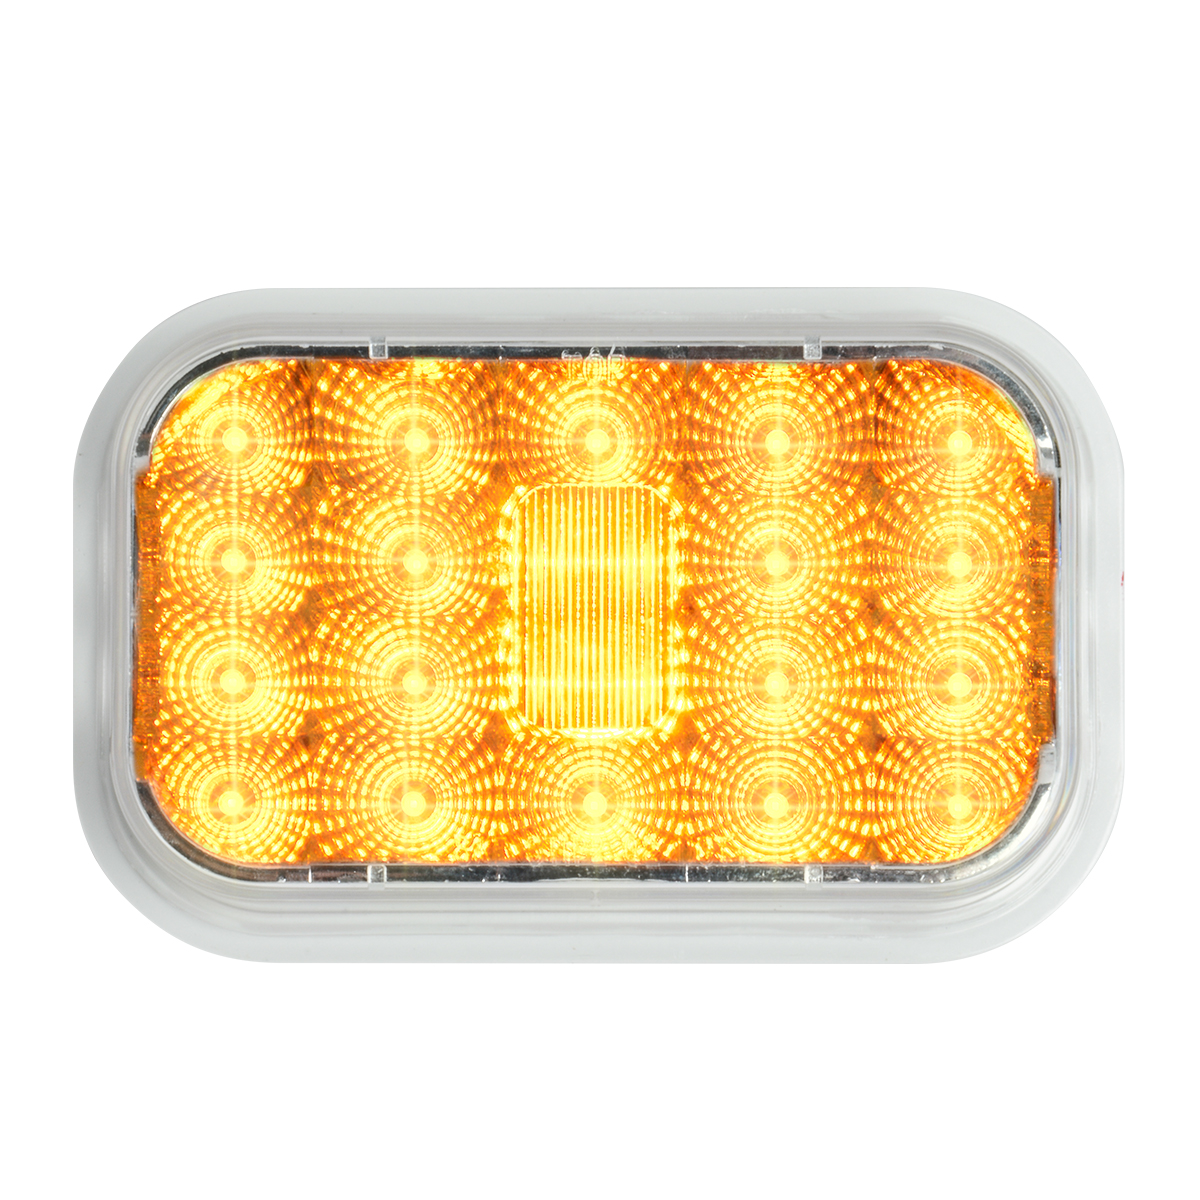 77461 High Profile Rectangular Spyder LED Light in Amber/Clear